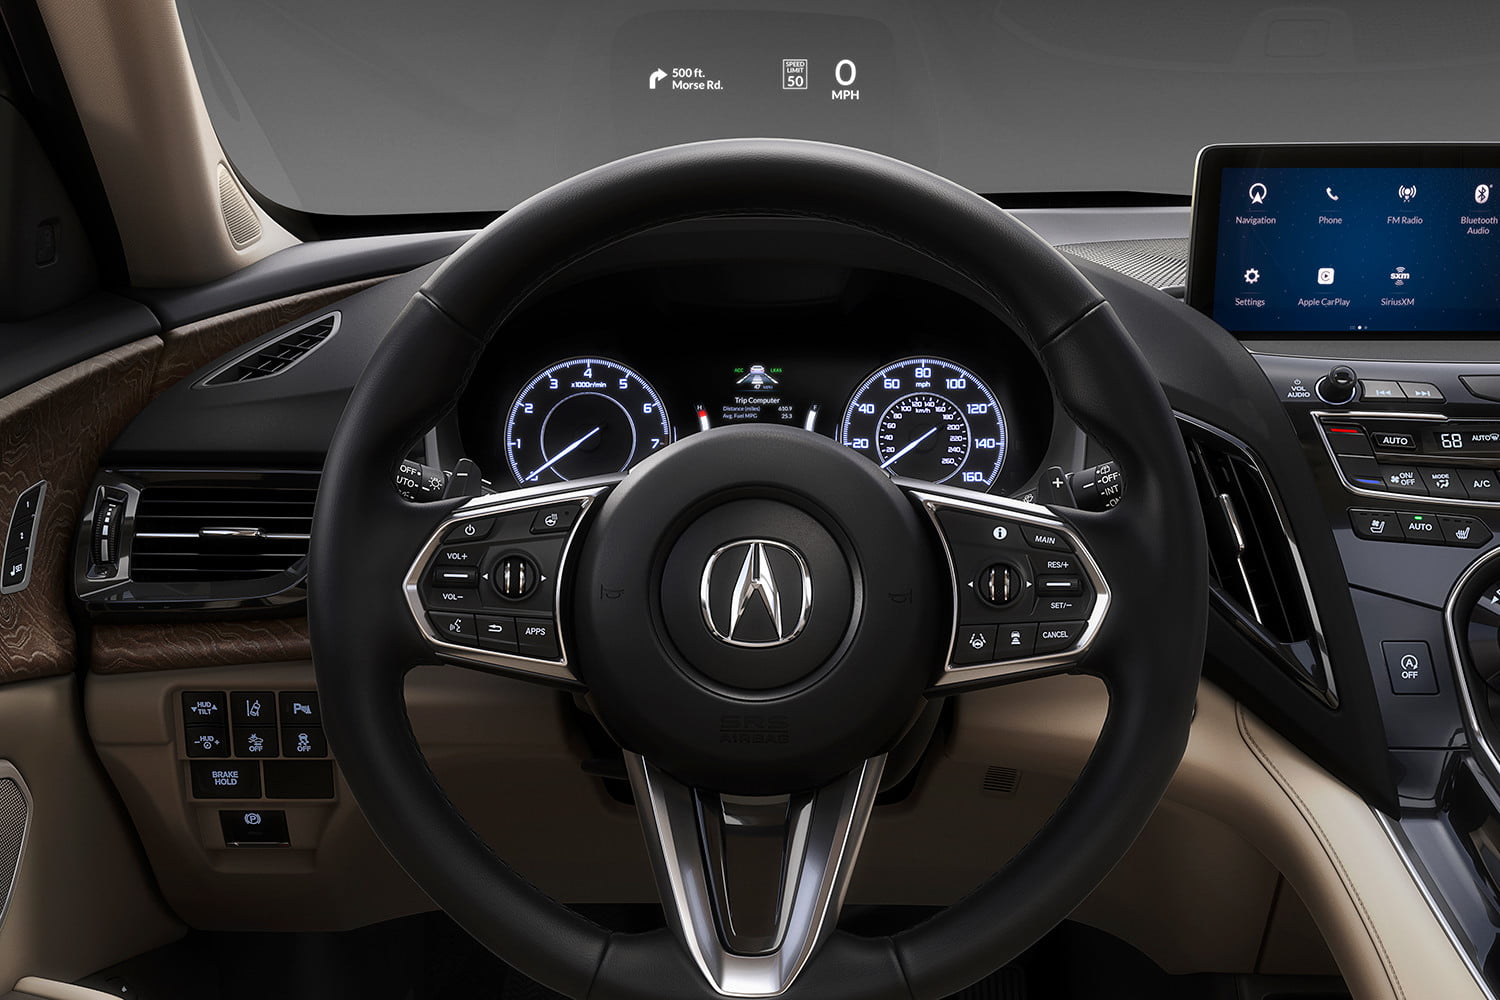 Acura True Touchpad Infotainment System Review Digital Trends